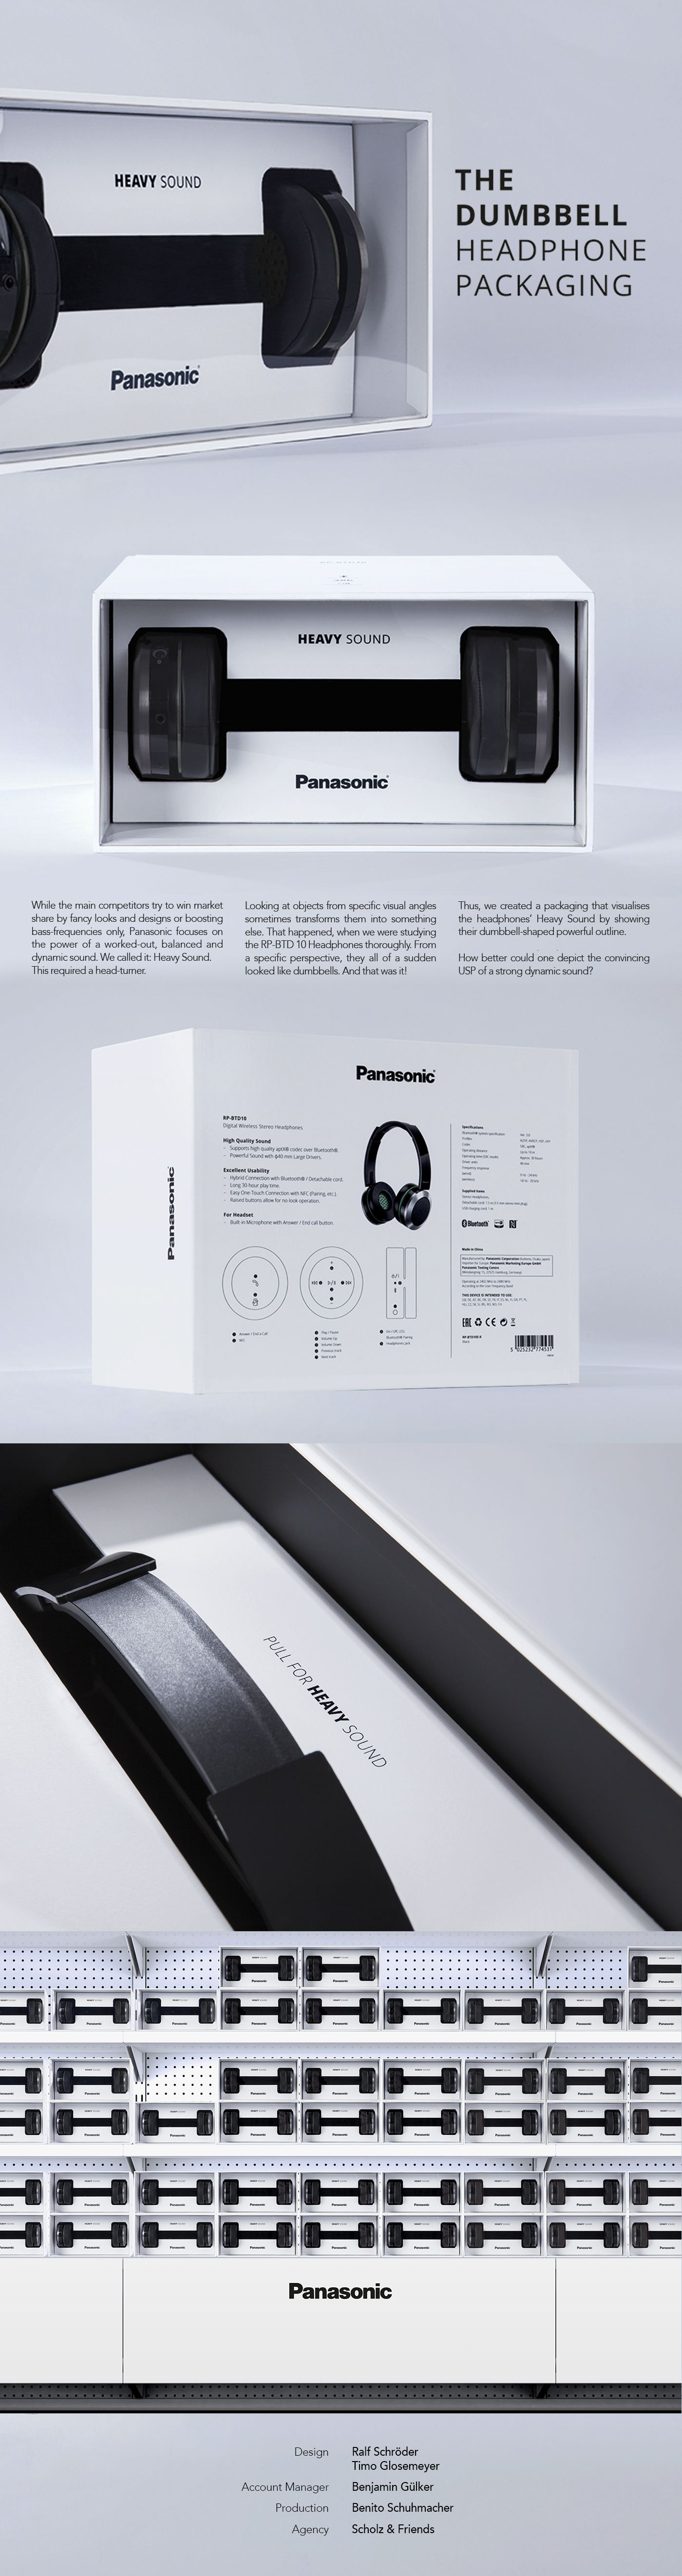 Panasonic the dumbbell headphone packagingpanasonic is for Panasonic phone label template